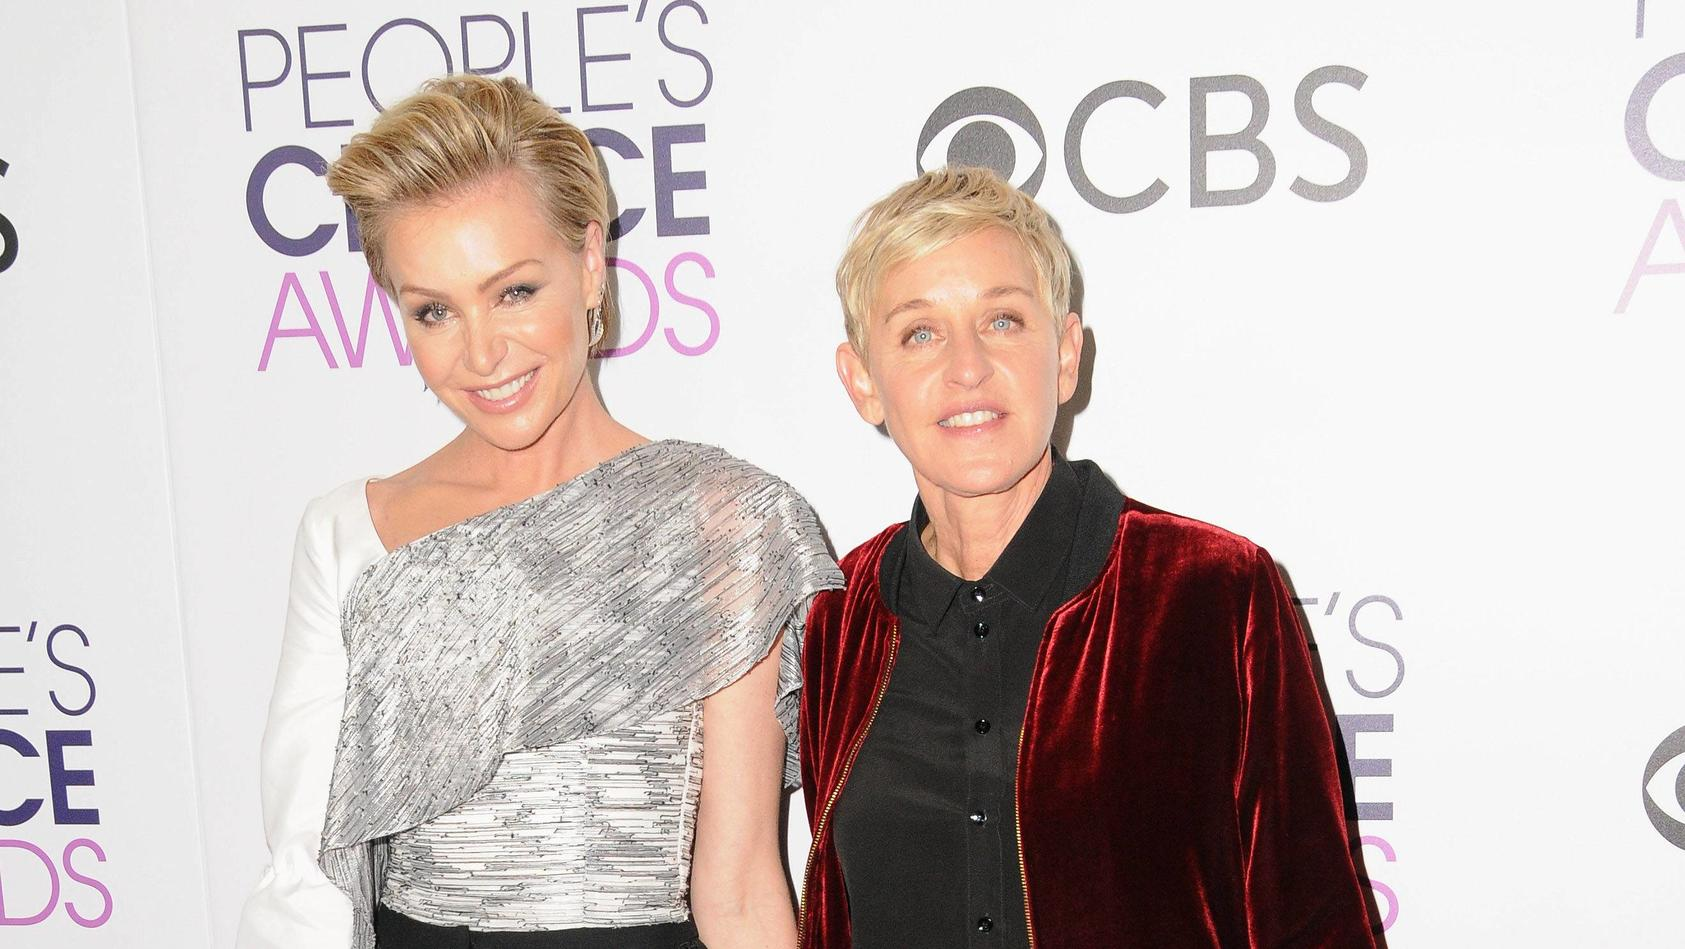 Portia de Rossi, Ellen Degeneres. 2017 People s Choice Awards Press Room held at the Microsoft Theater. Photo Credit: /AdMedia Los Angeles United States P